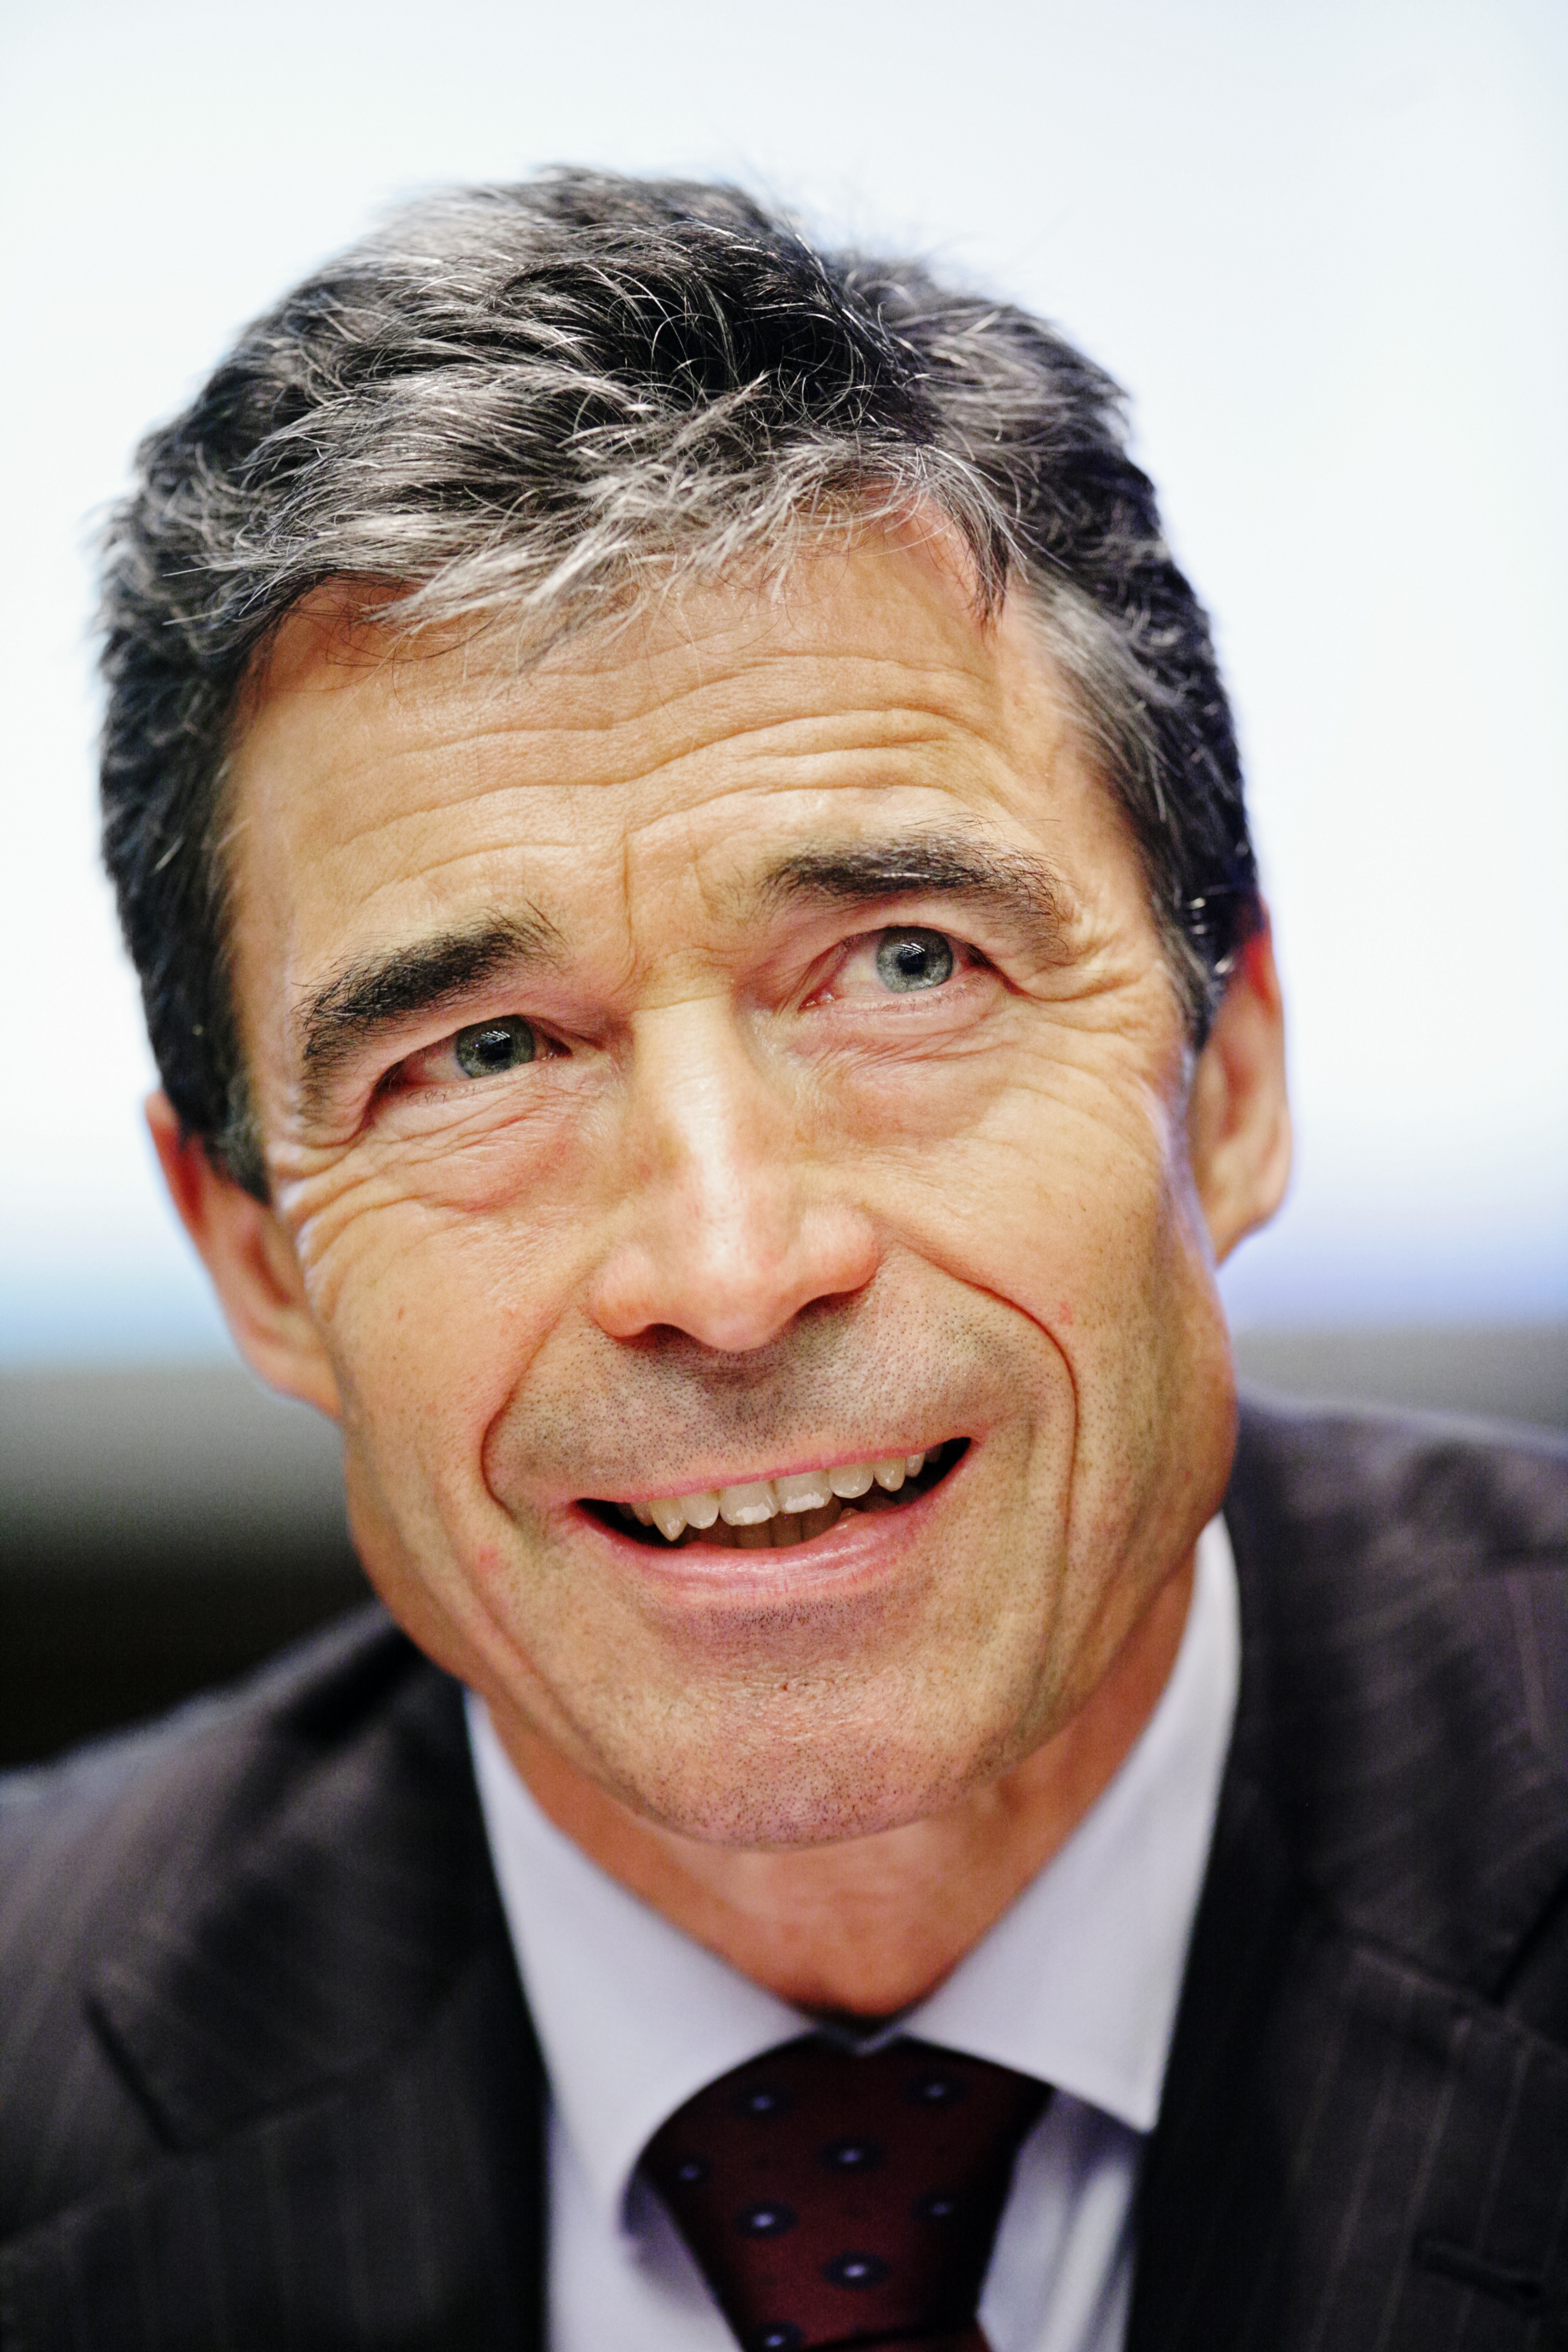 Russian Oil and Gas Industry: News #2 Former_Danish_Prime_Minister_Anders_Fogh_Rasmussen_at_the_Nordic_Council_Session_in_Helsinki_2008-10-28